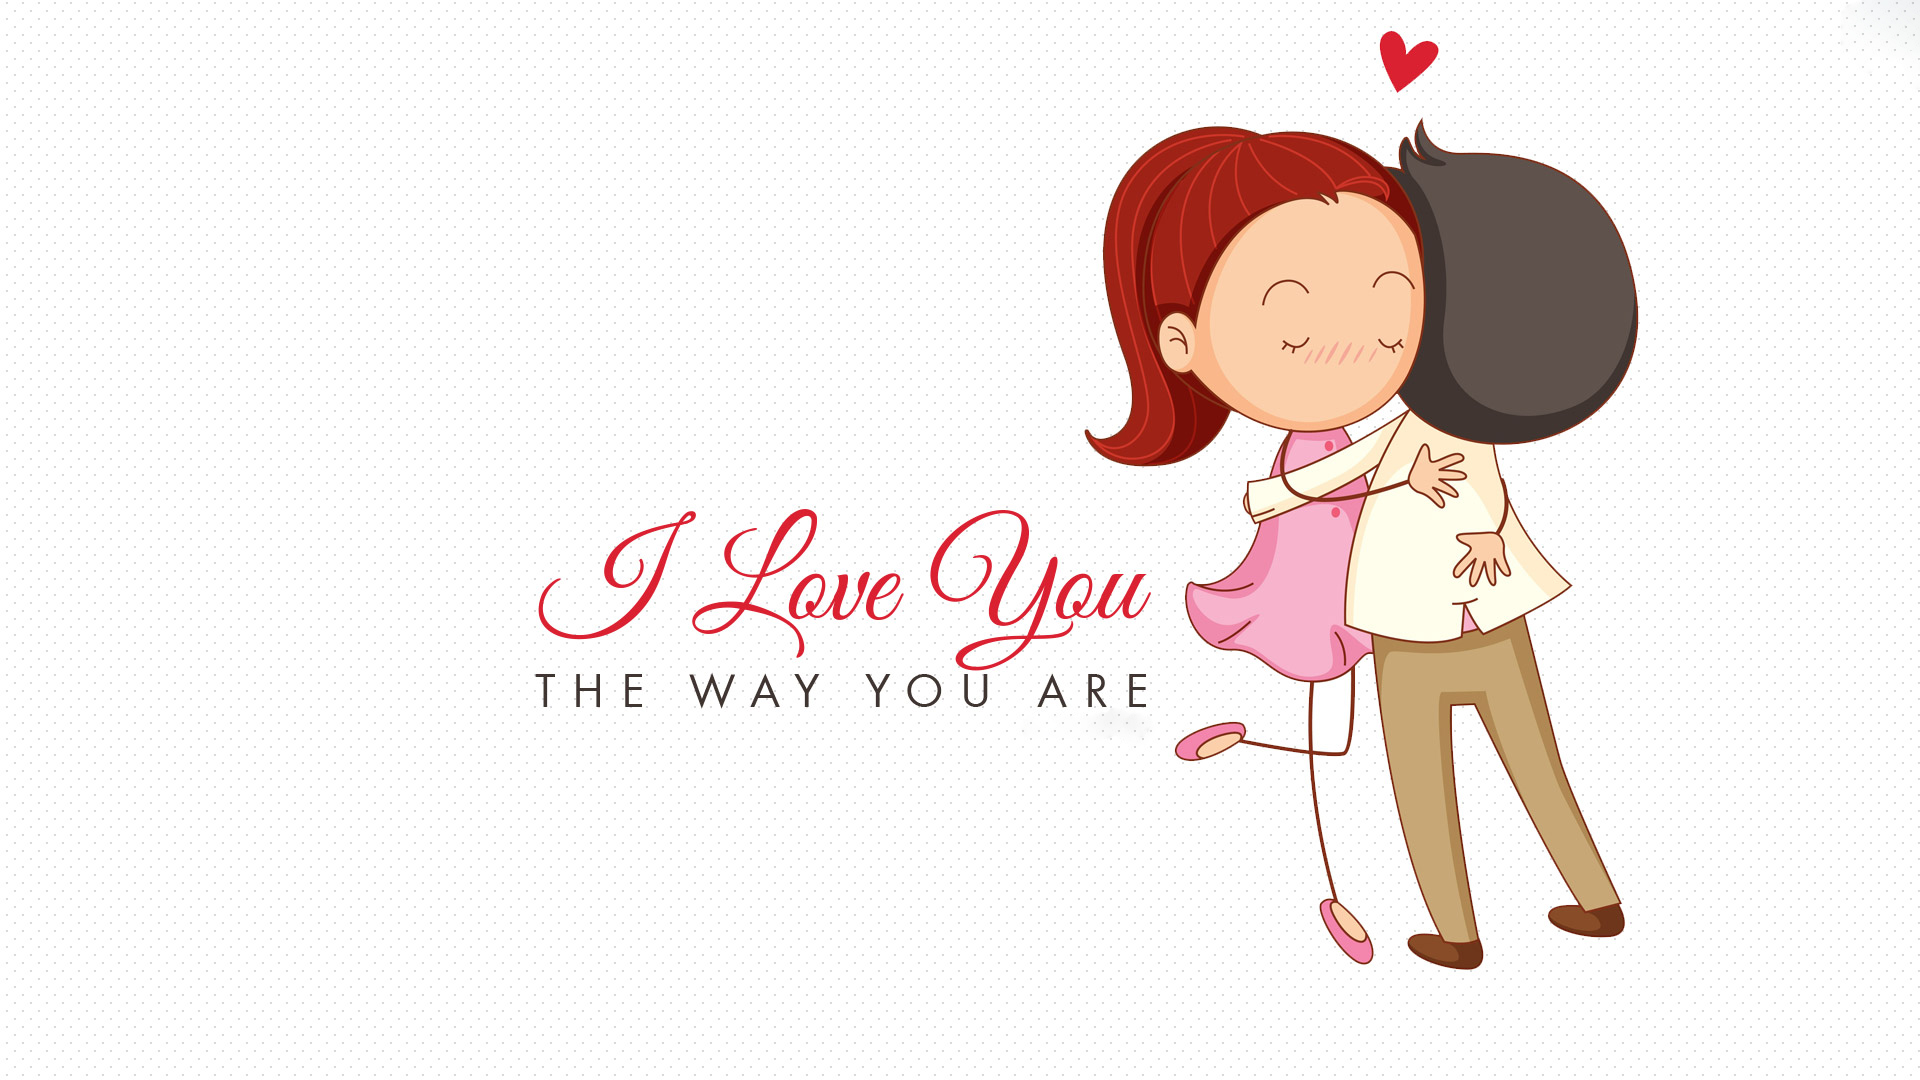 I Love You You Love Me Wallpaper : Top 150+ Beautiful cute Romantic Love couple HD Wallpaper